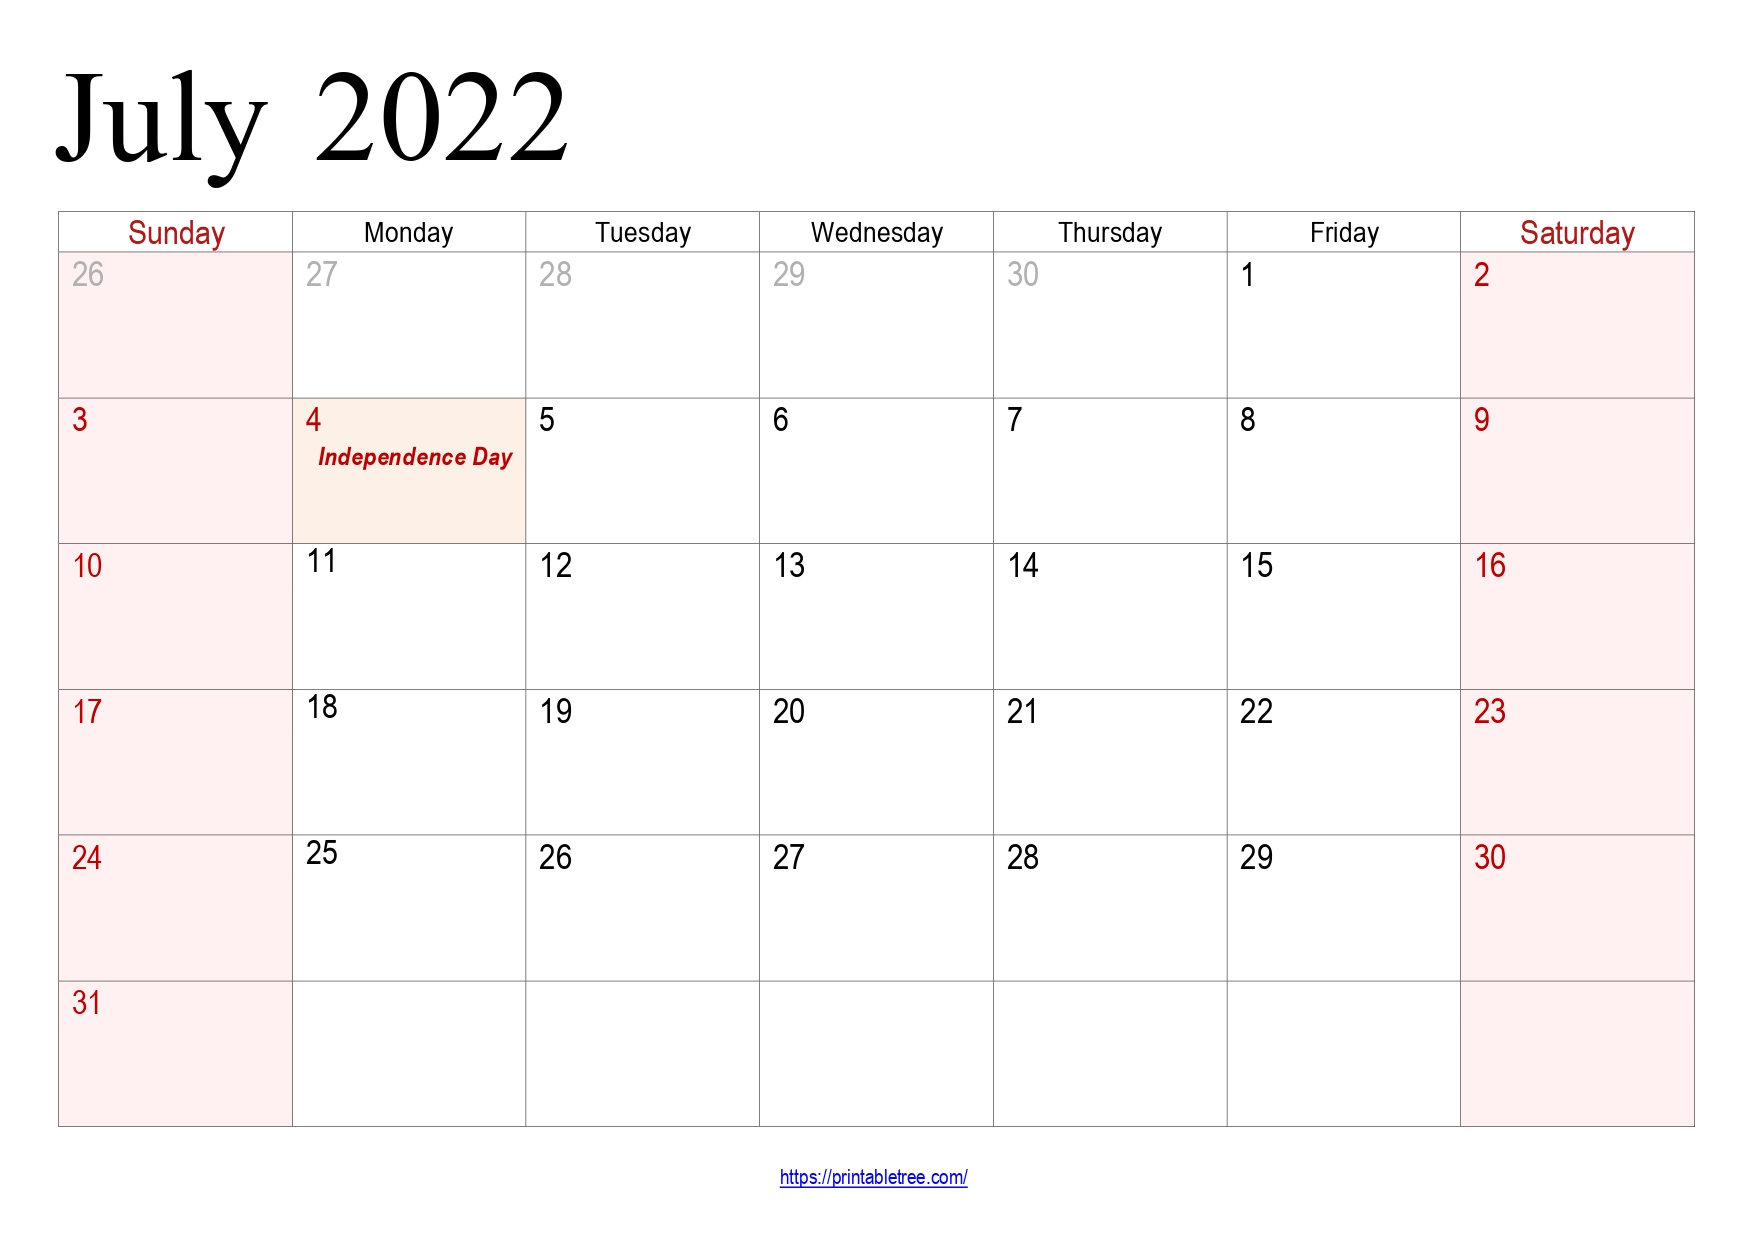 July Calendar 2022 with holidays